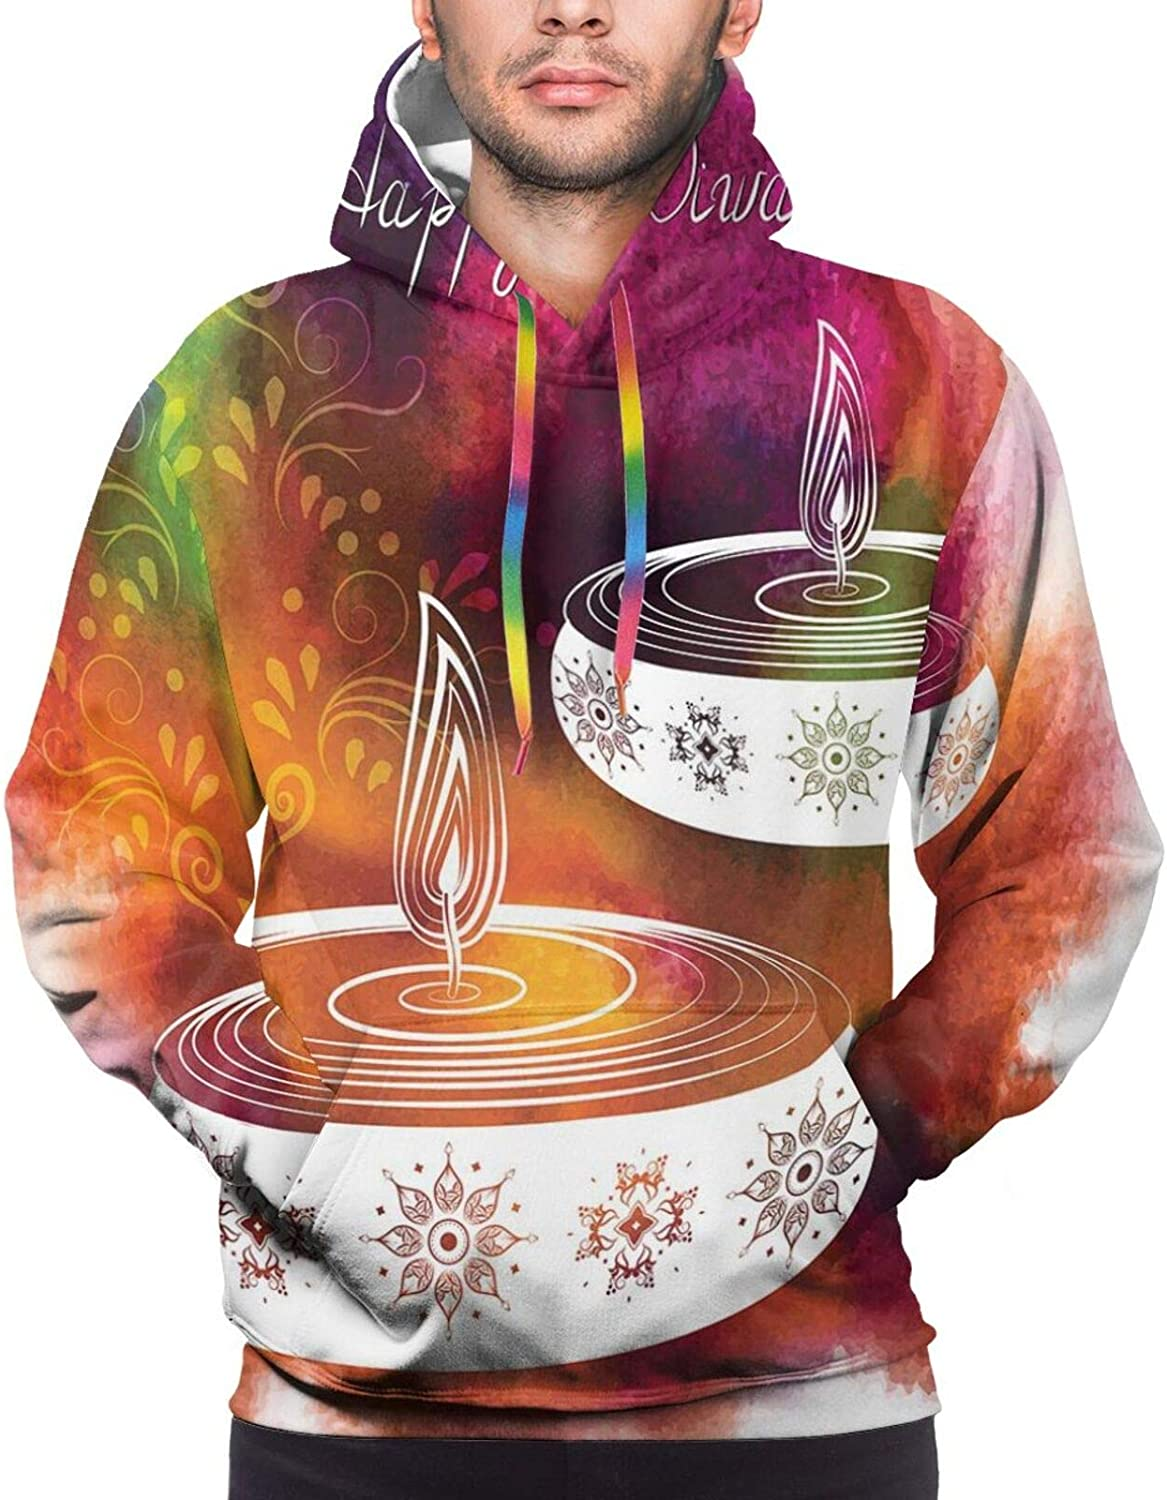 Men's Hoodies Sweatshirts,Abstract Puzzle Style Trippy Fractal Creative Overlapping Color Forms Design